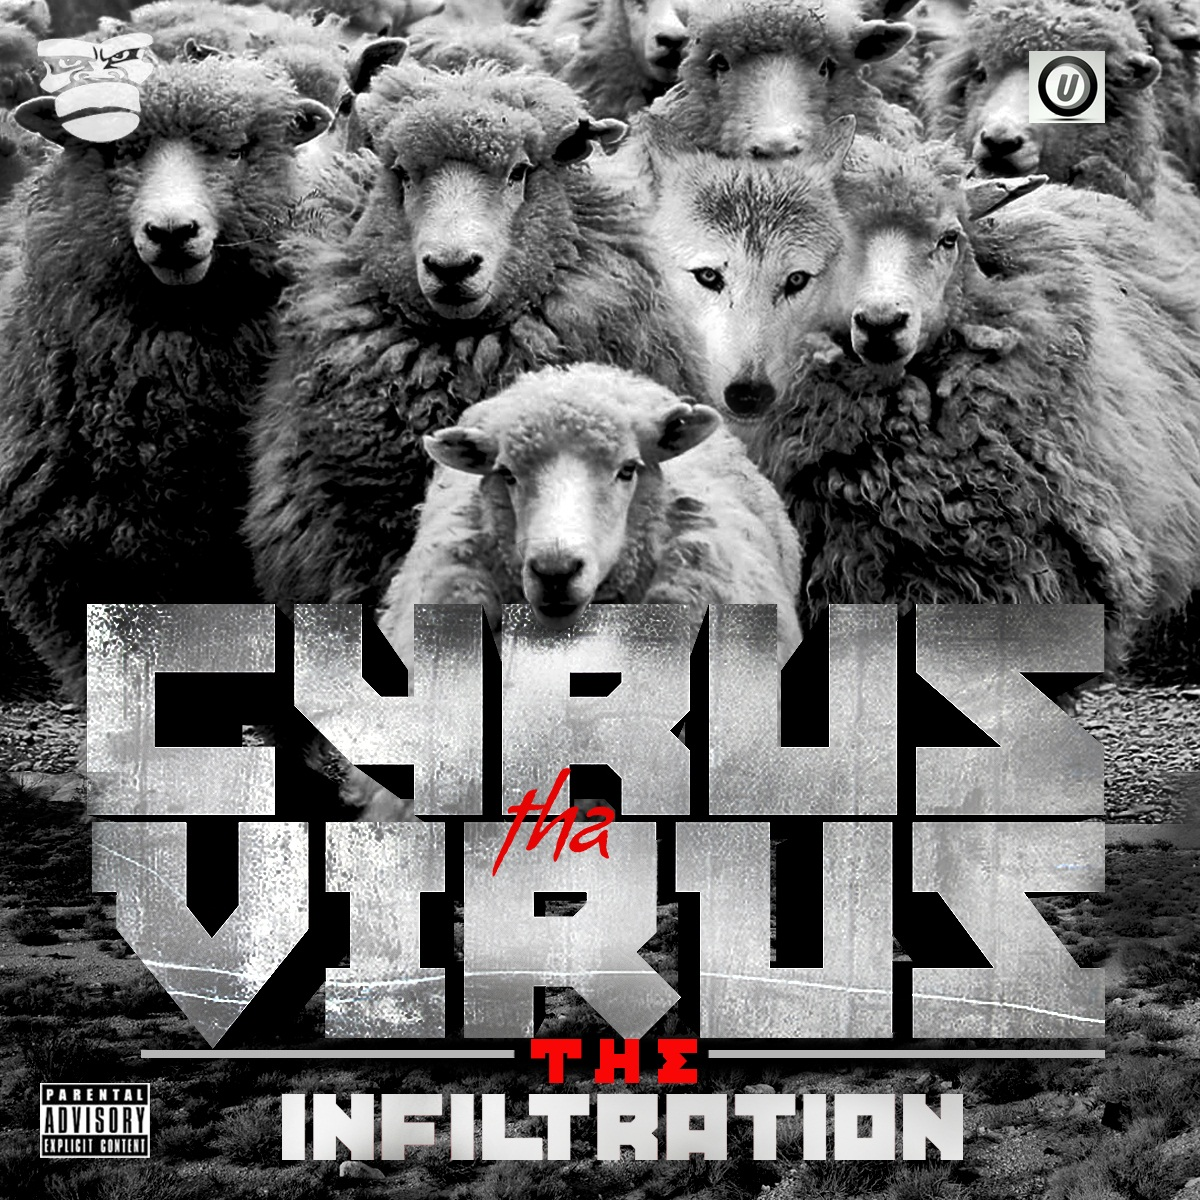 Cyrus tha Virus releases 'The Infiltration' mixtape